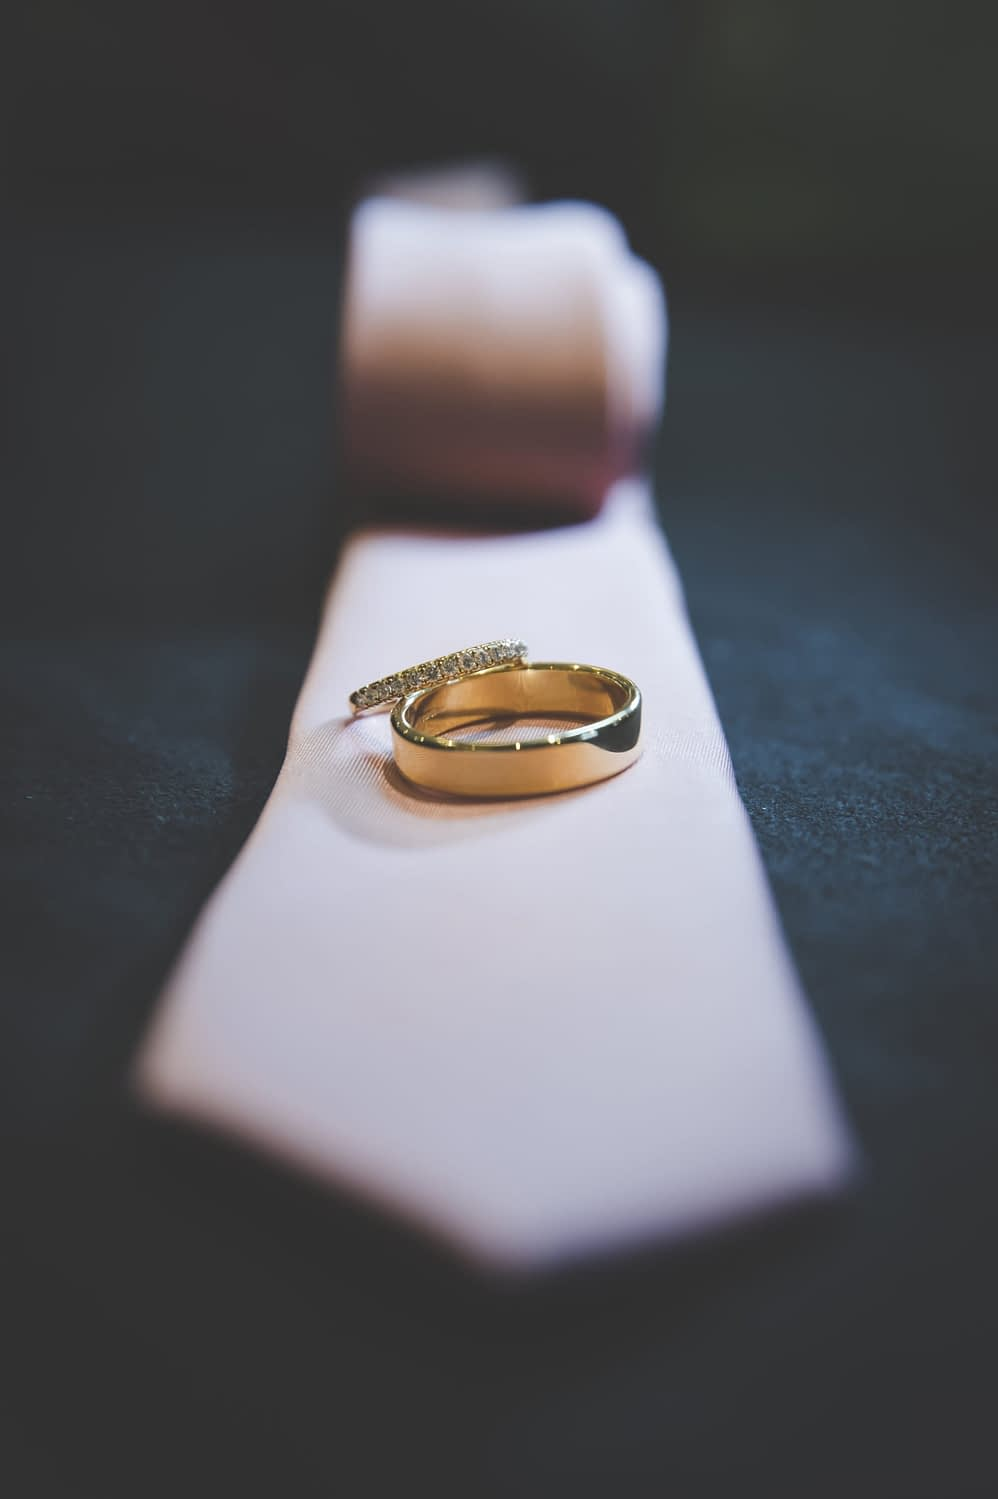 gold wedding rings on a pink tie